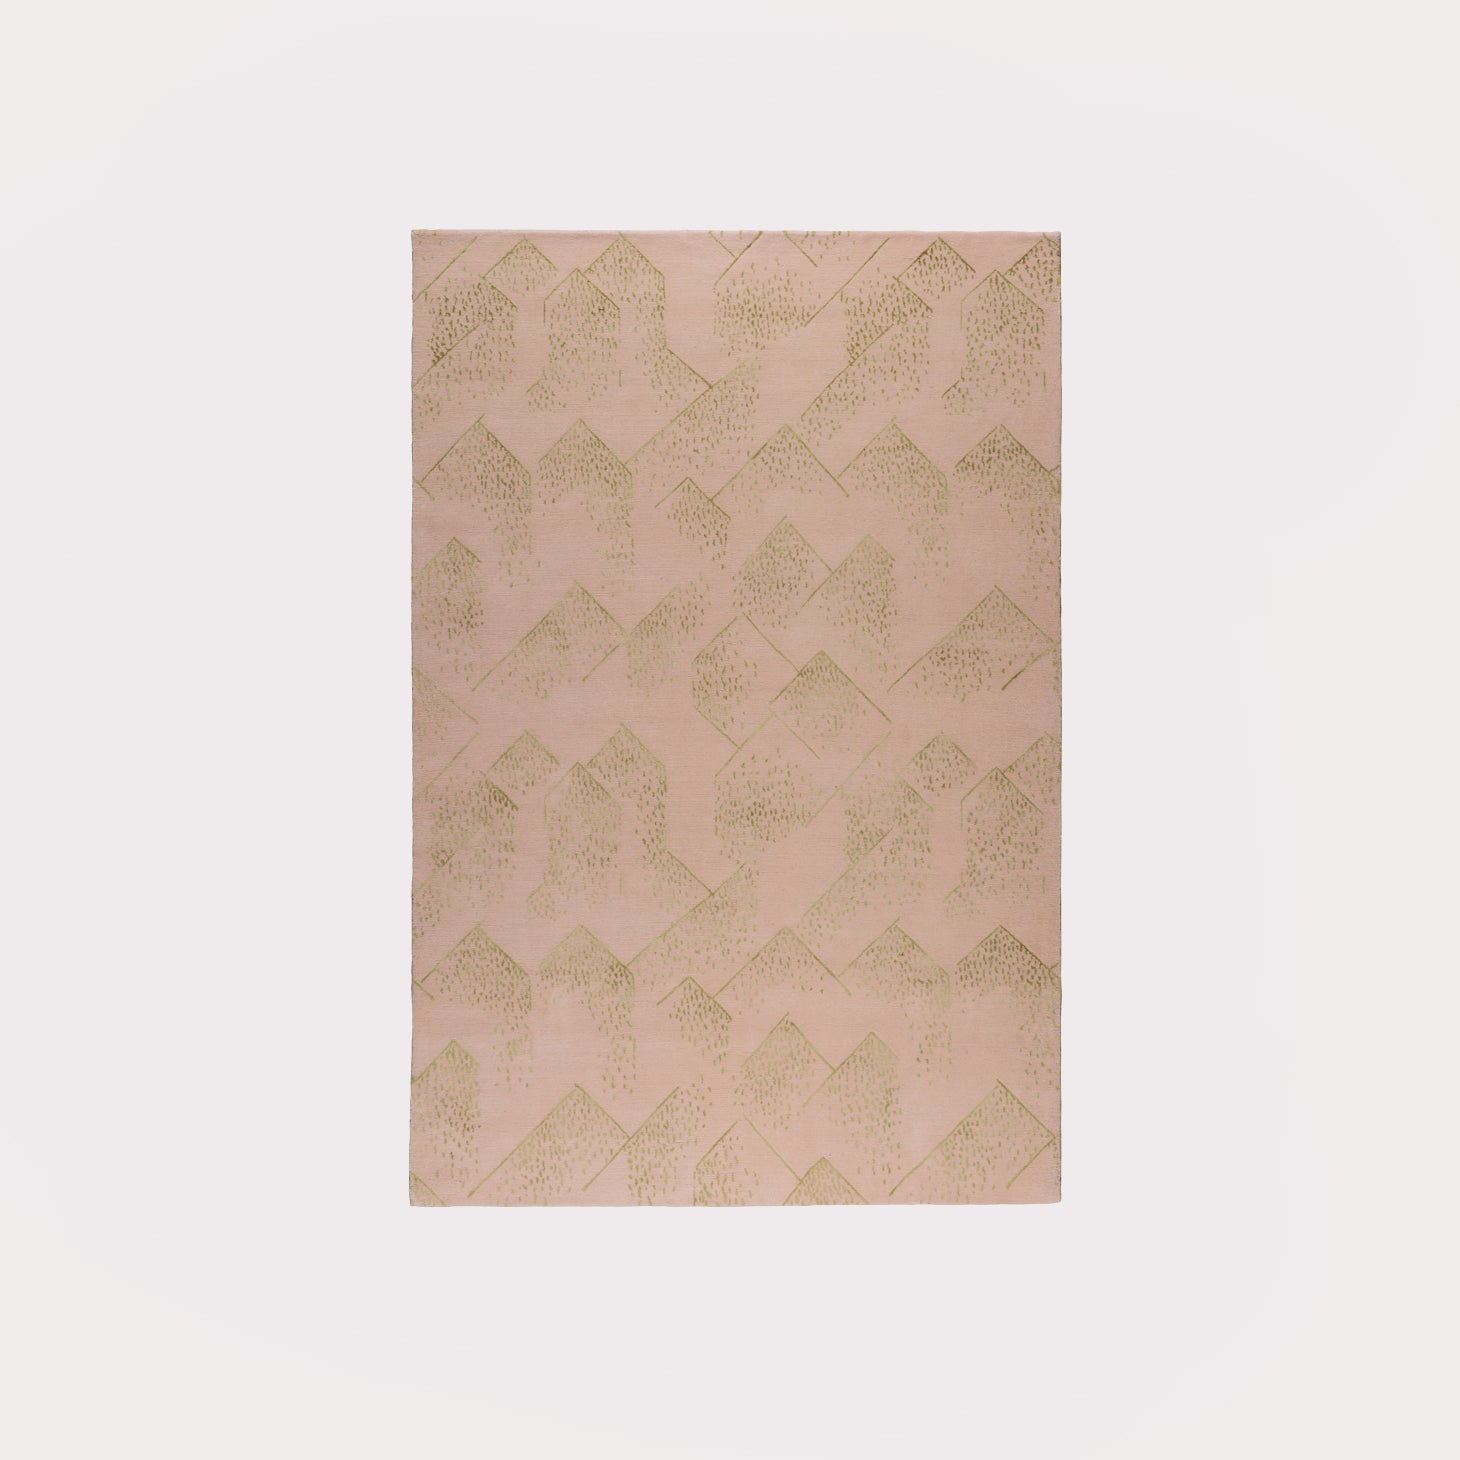 Brink Dusk Floor Coverings Kelly Wearstler Designer Furniture Sku: 391-150-11398